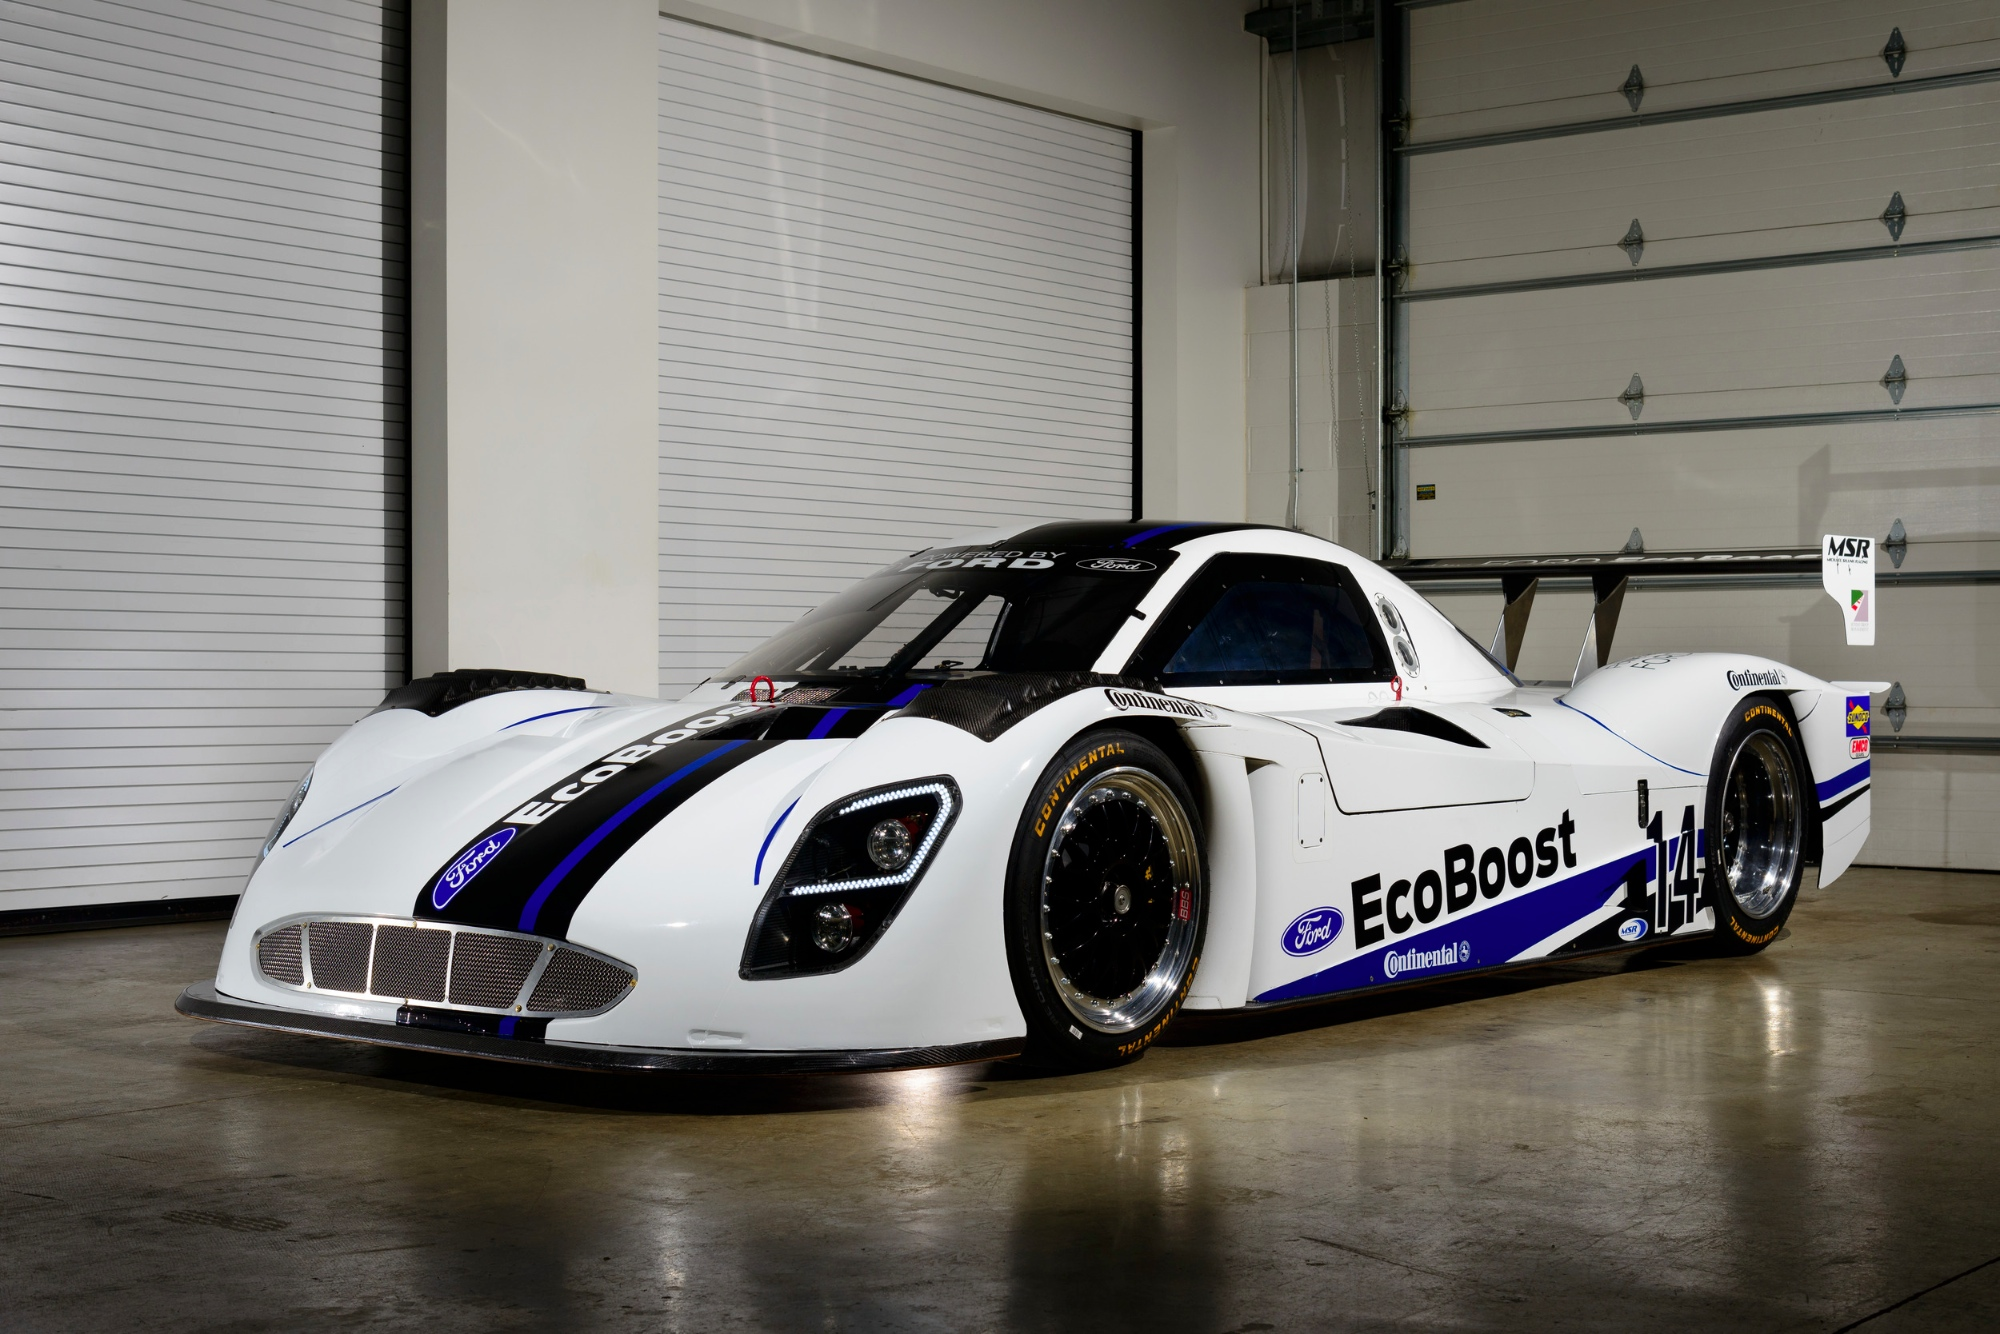 Prototype race cars